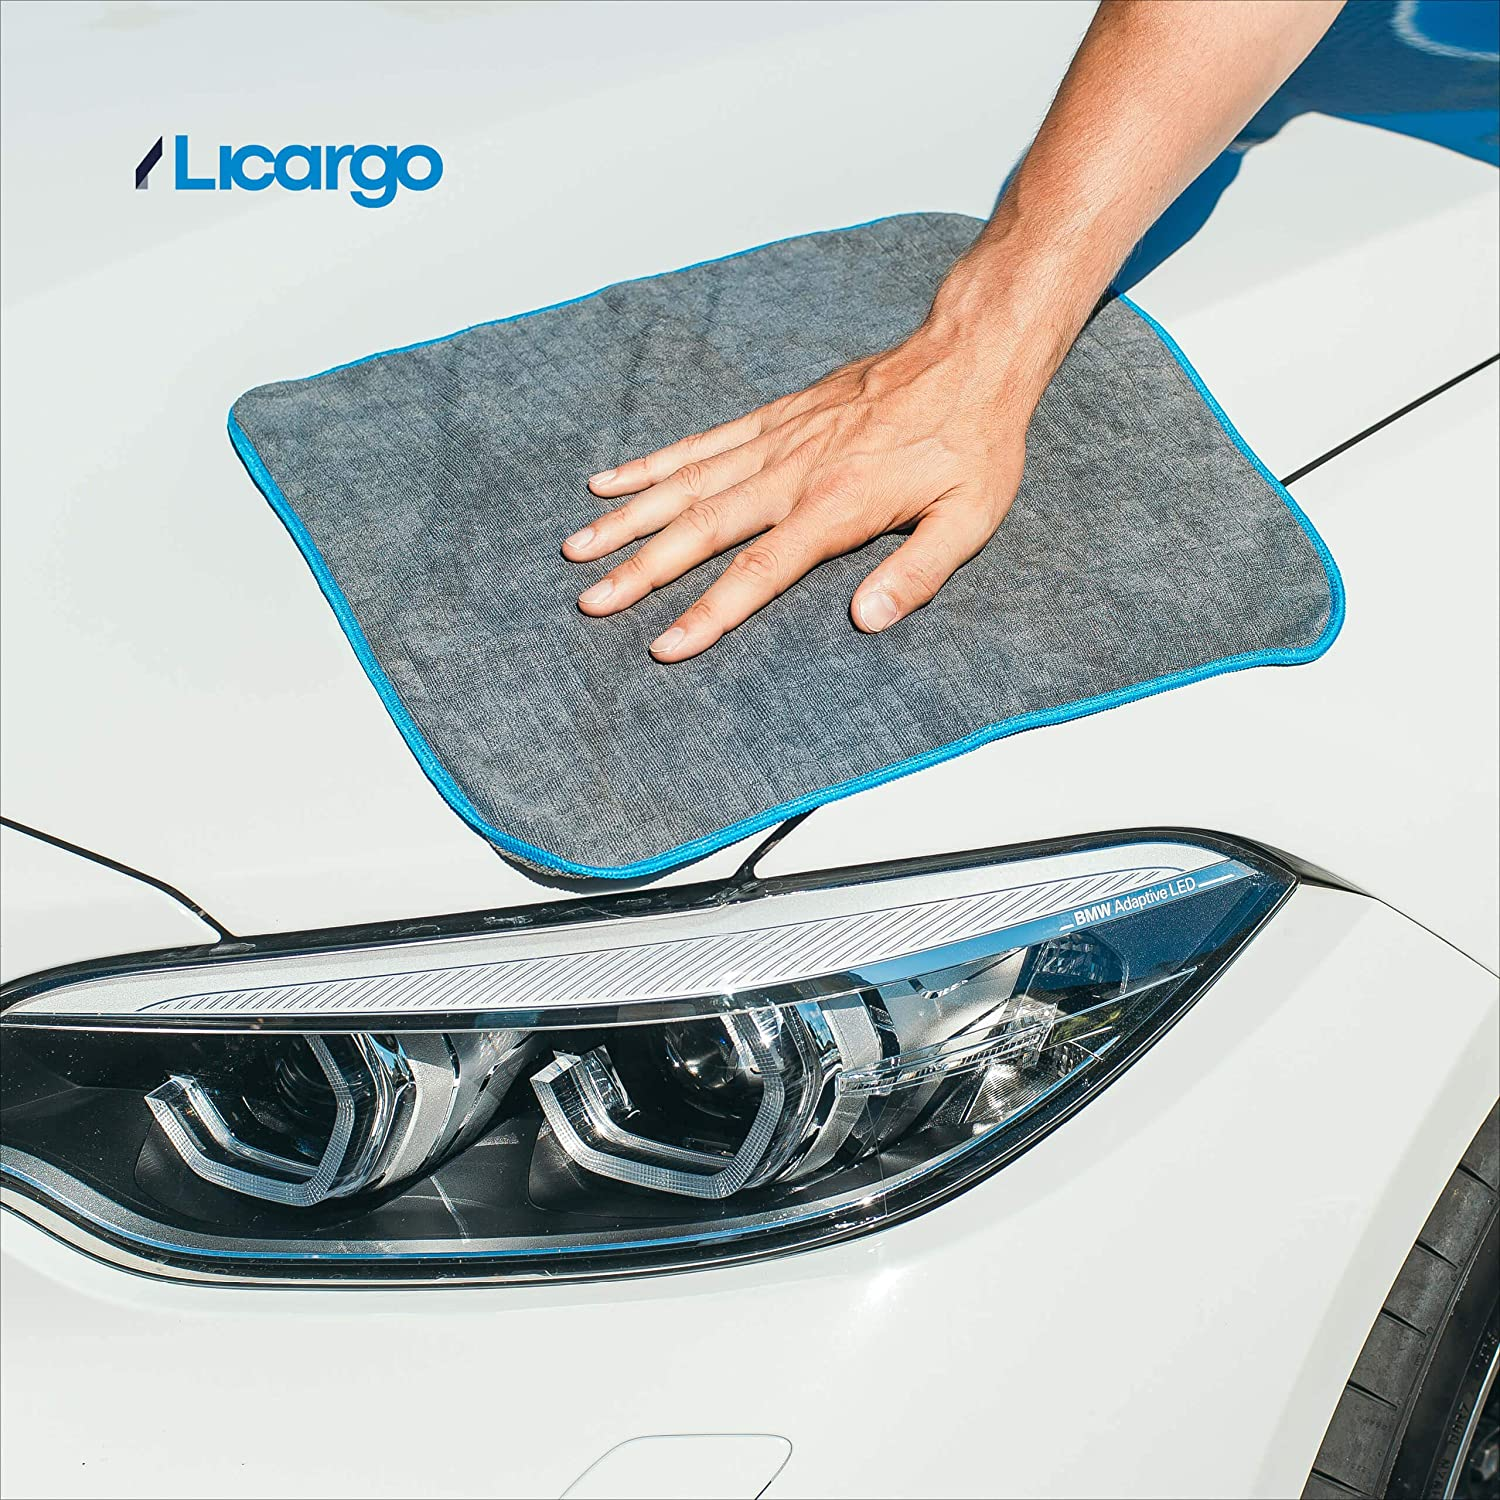 buffing super absorbent and soft car drying towel for cleaning 40x40cm Licargo/® microfibre cloths with 380 GSM for gentle car care detailing lint-free car cleaning cloths 6Pcs 15.7 x 15.7